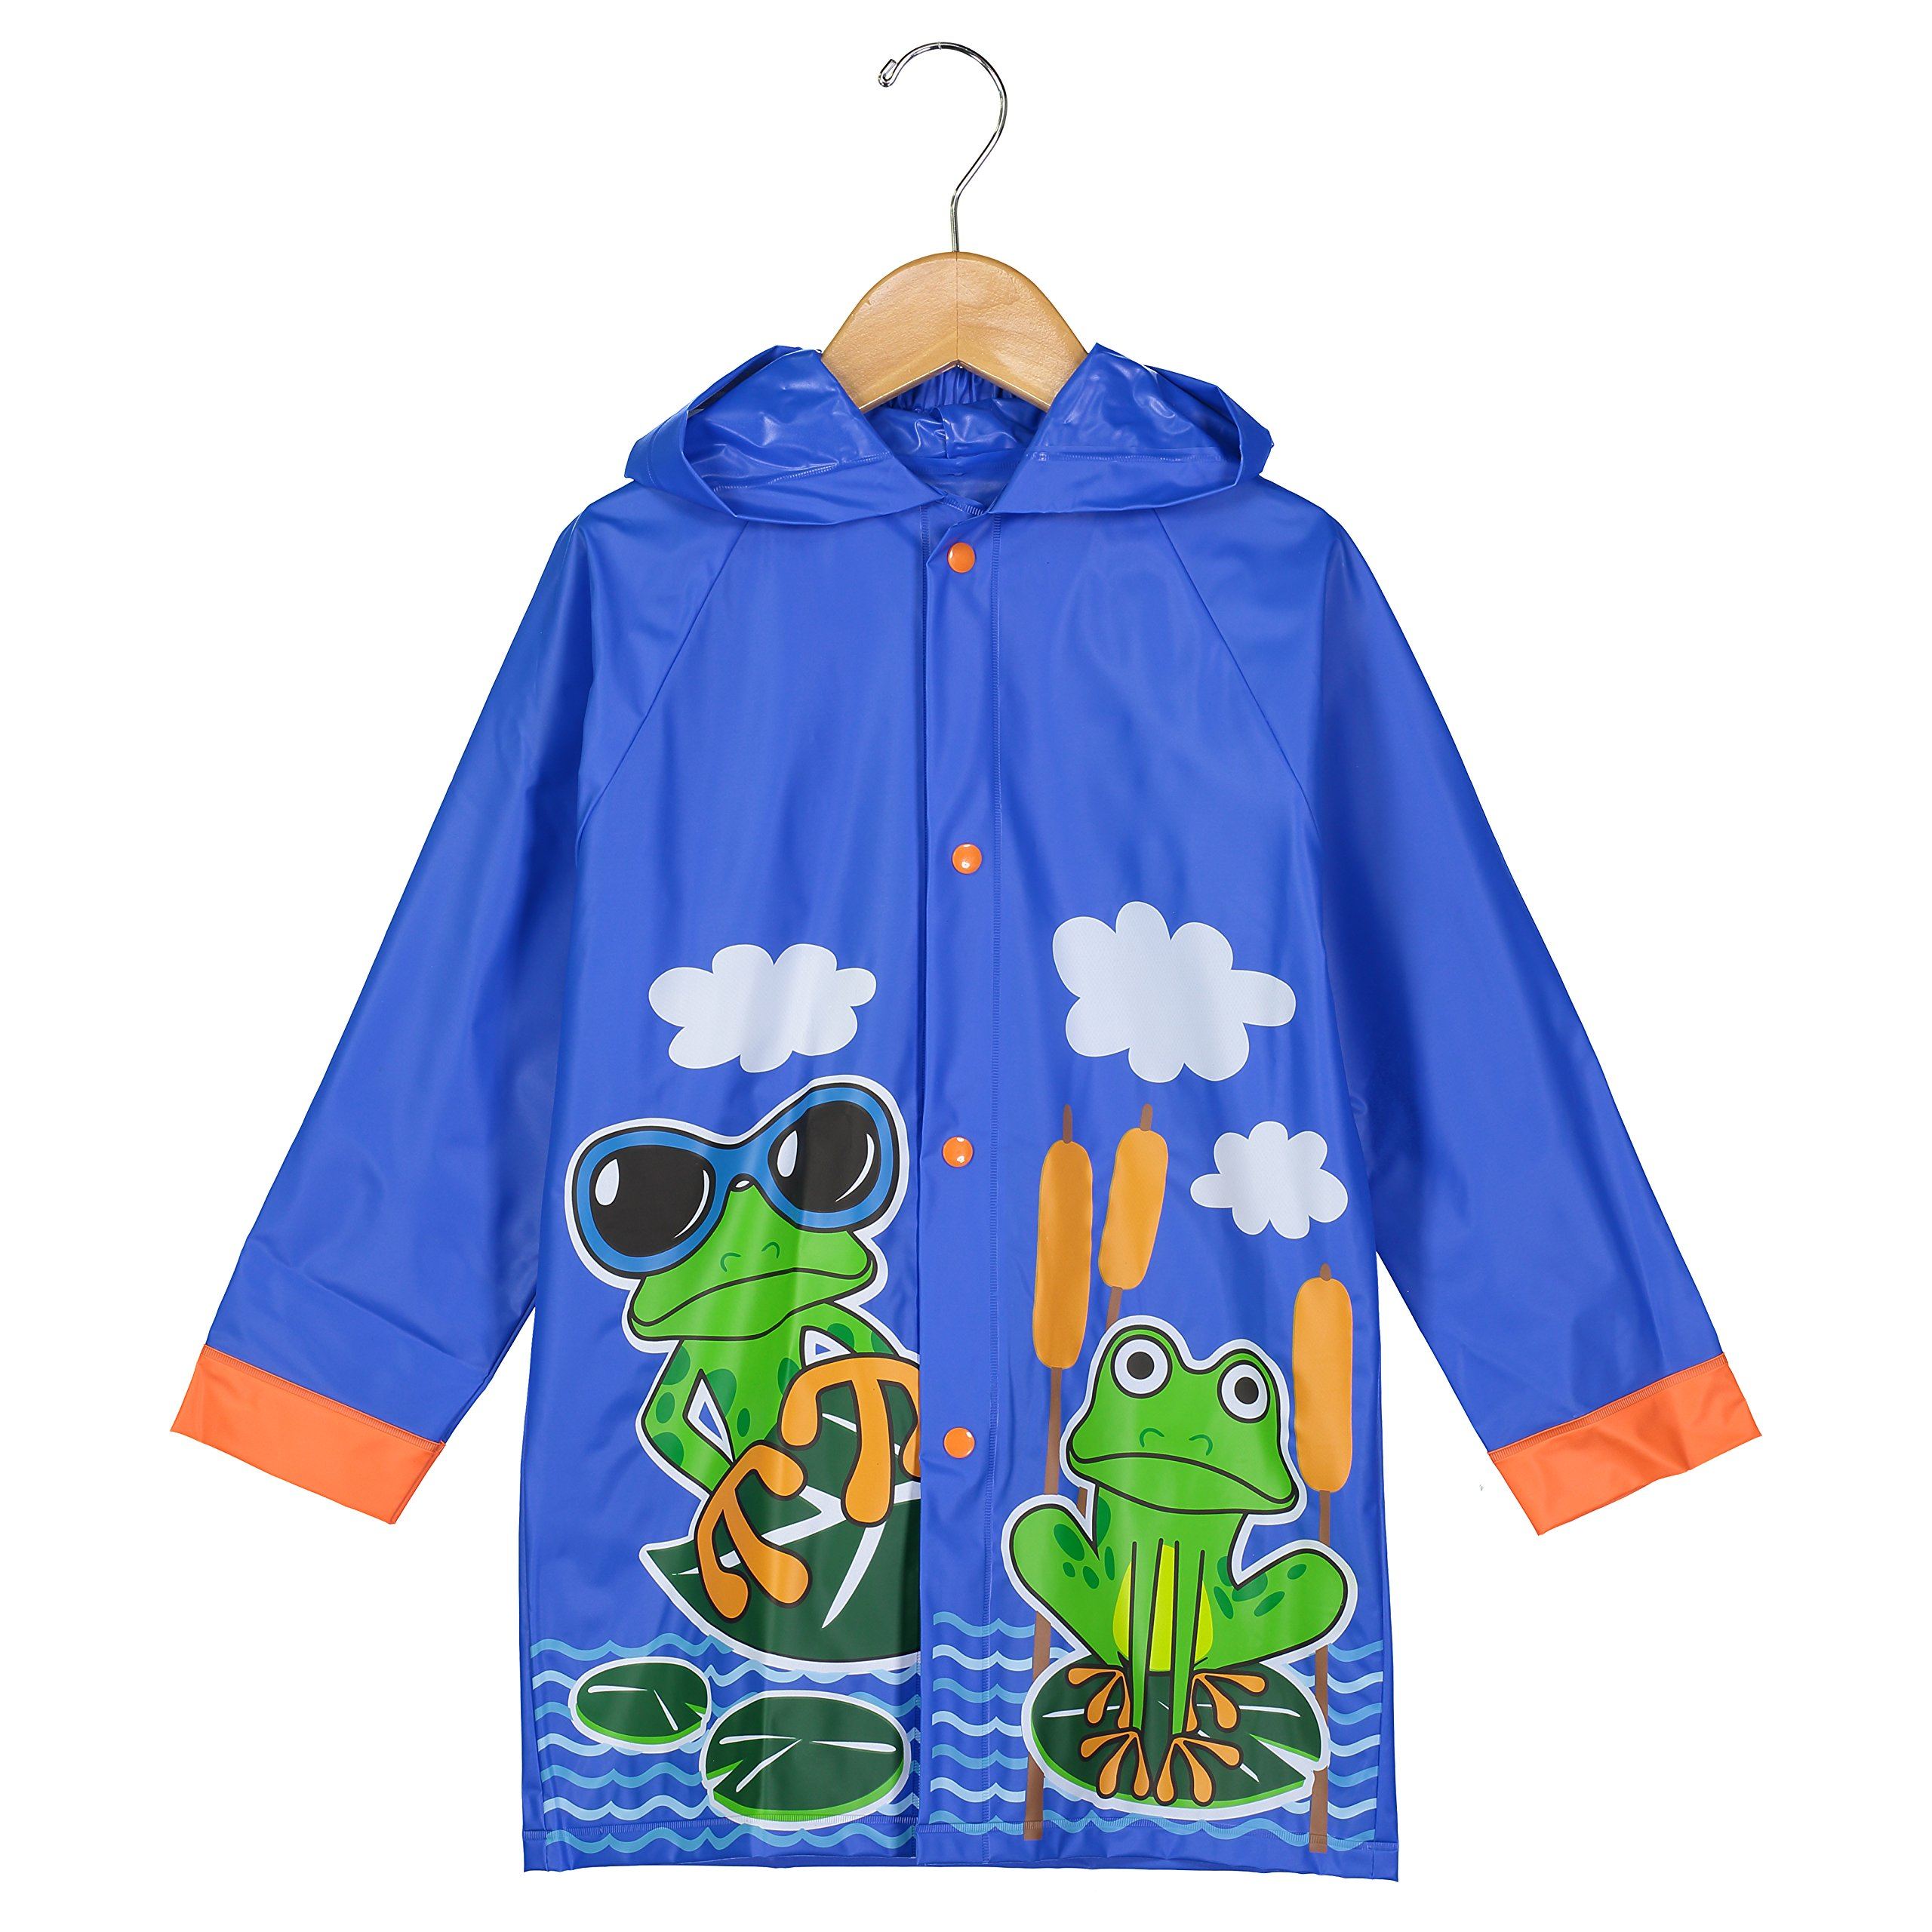 Puddle Play Little Boys Frog Rain Slicker Outwear Hooded - Size 4-5 by Puddle Play